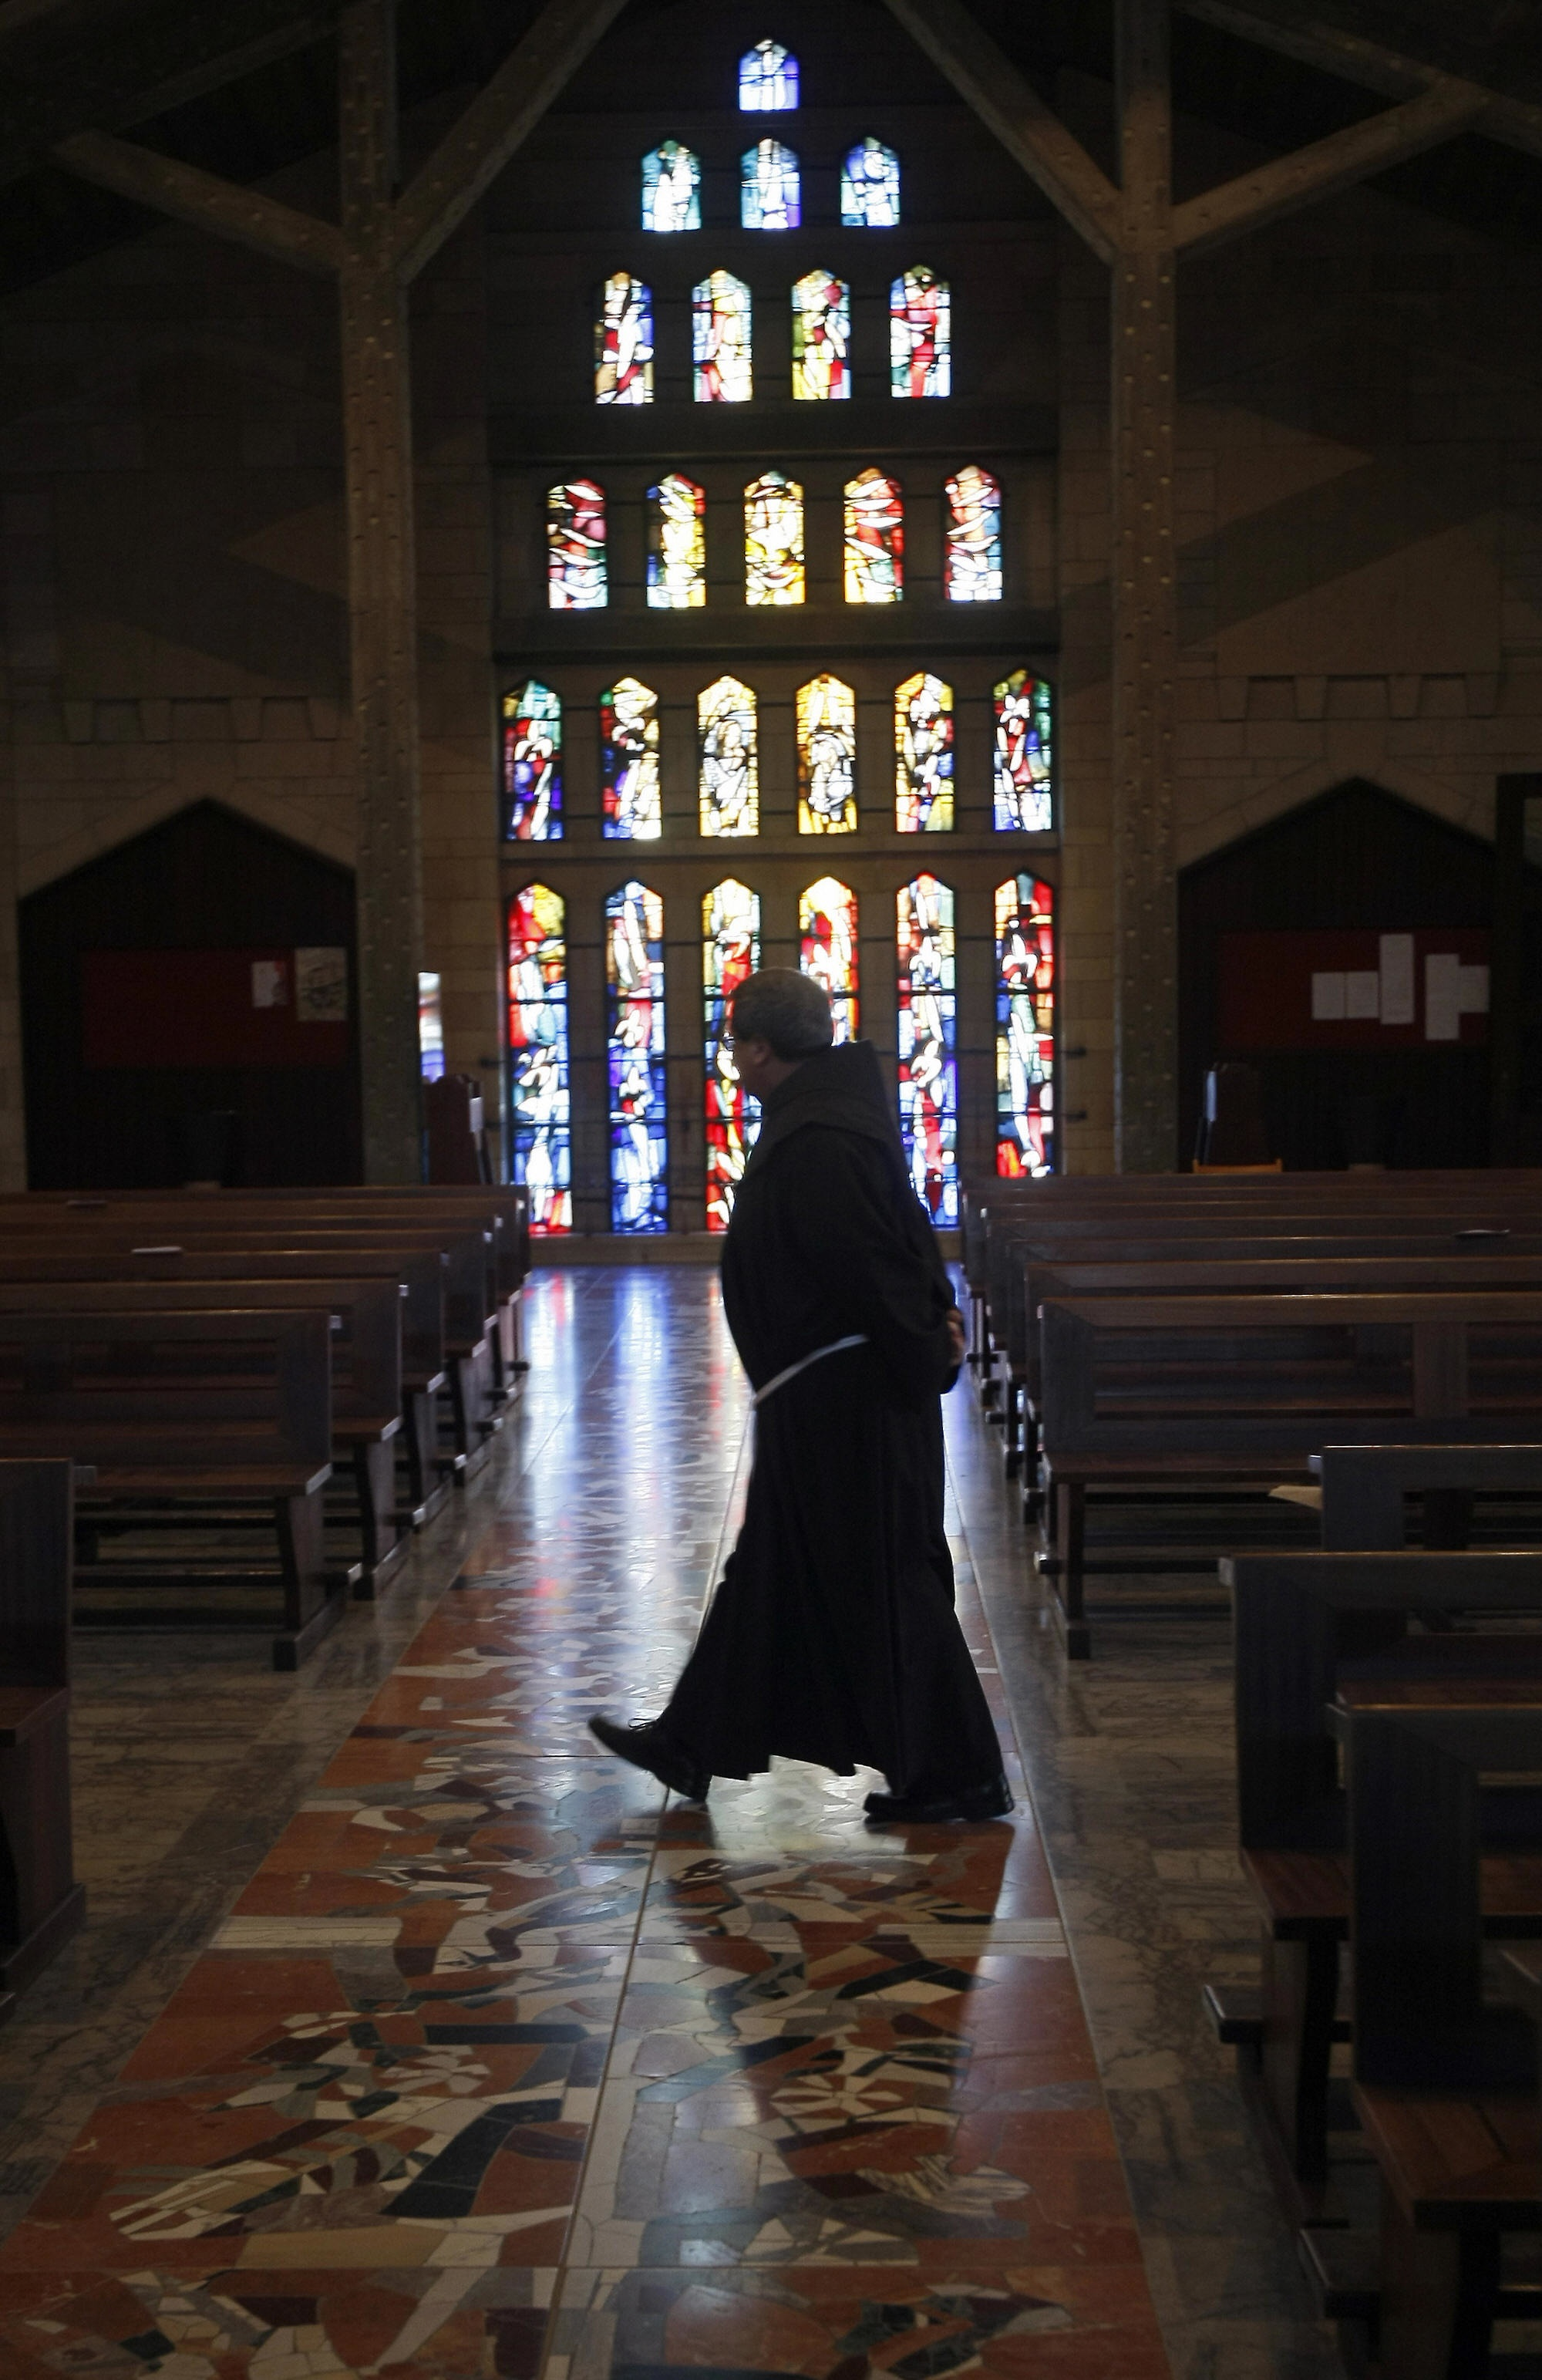 MENAHEM KAHANA/AFP/Getty Images.A priest walks at the Church of the Annunciation, believed to stand at the site of Mary's house where angel Gabriel appeared and announced that she would give birth to Jesus Christ, in the outskirts of the Galilee town of Nazareth in northern Israel on March 29, 2009. Pope Benedict XVI is scheduled to hold an open-air mass near the site during his visit to the Holy Land in May.